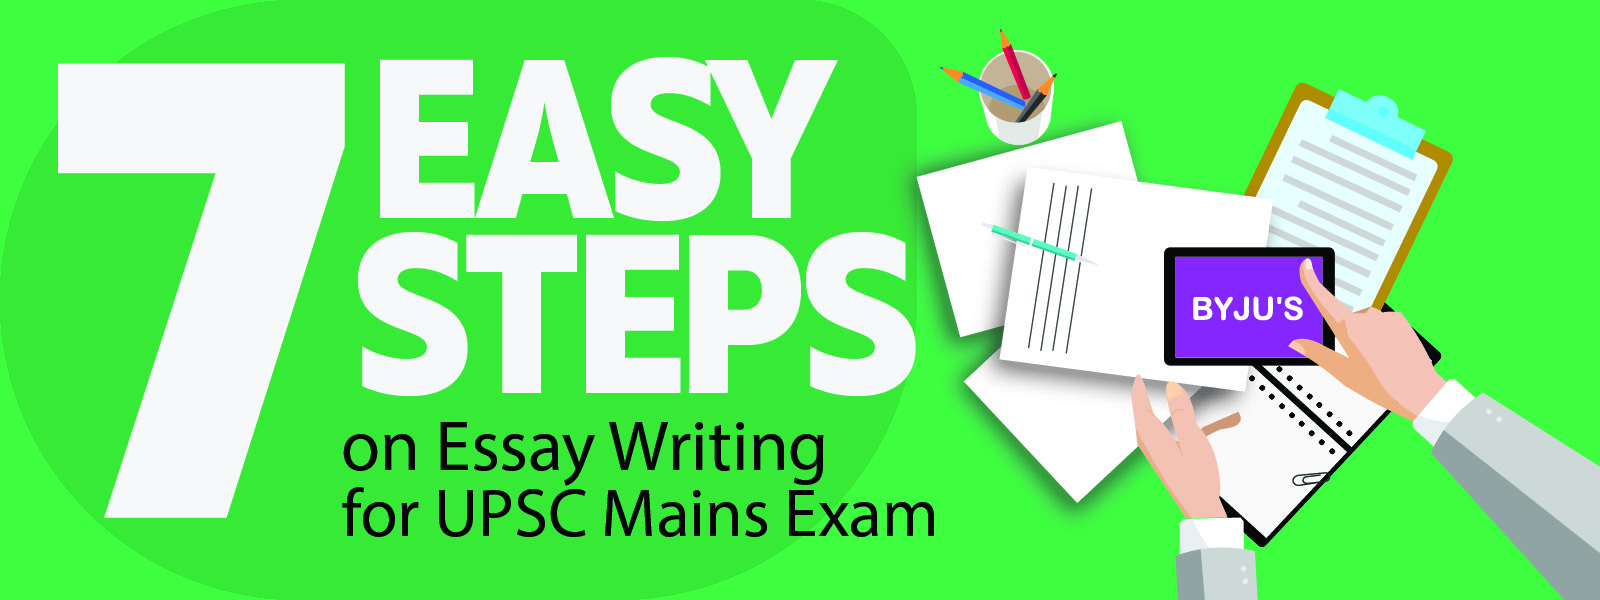 Essay writing for Civil Services Examination     IAS     Journey   Beyond Amazon in